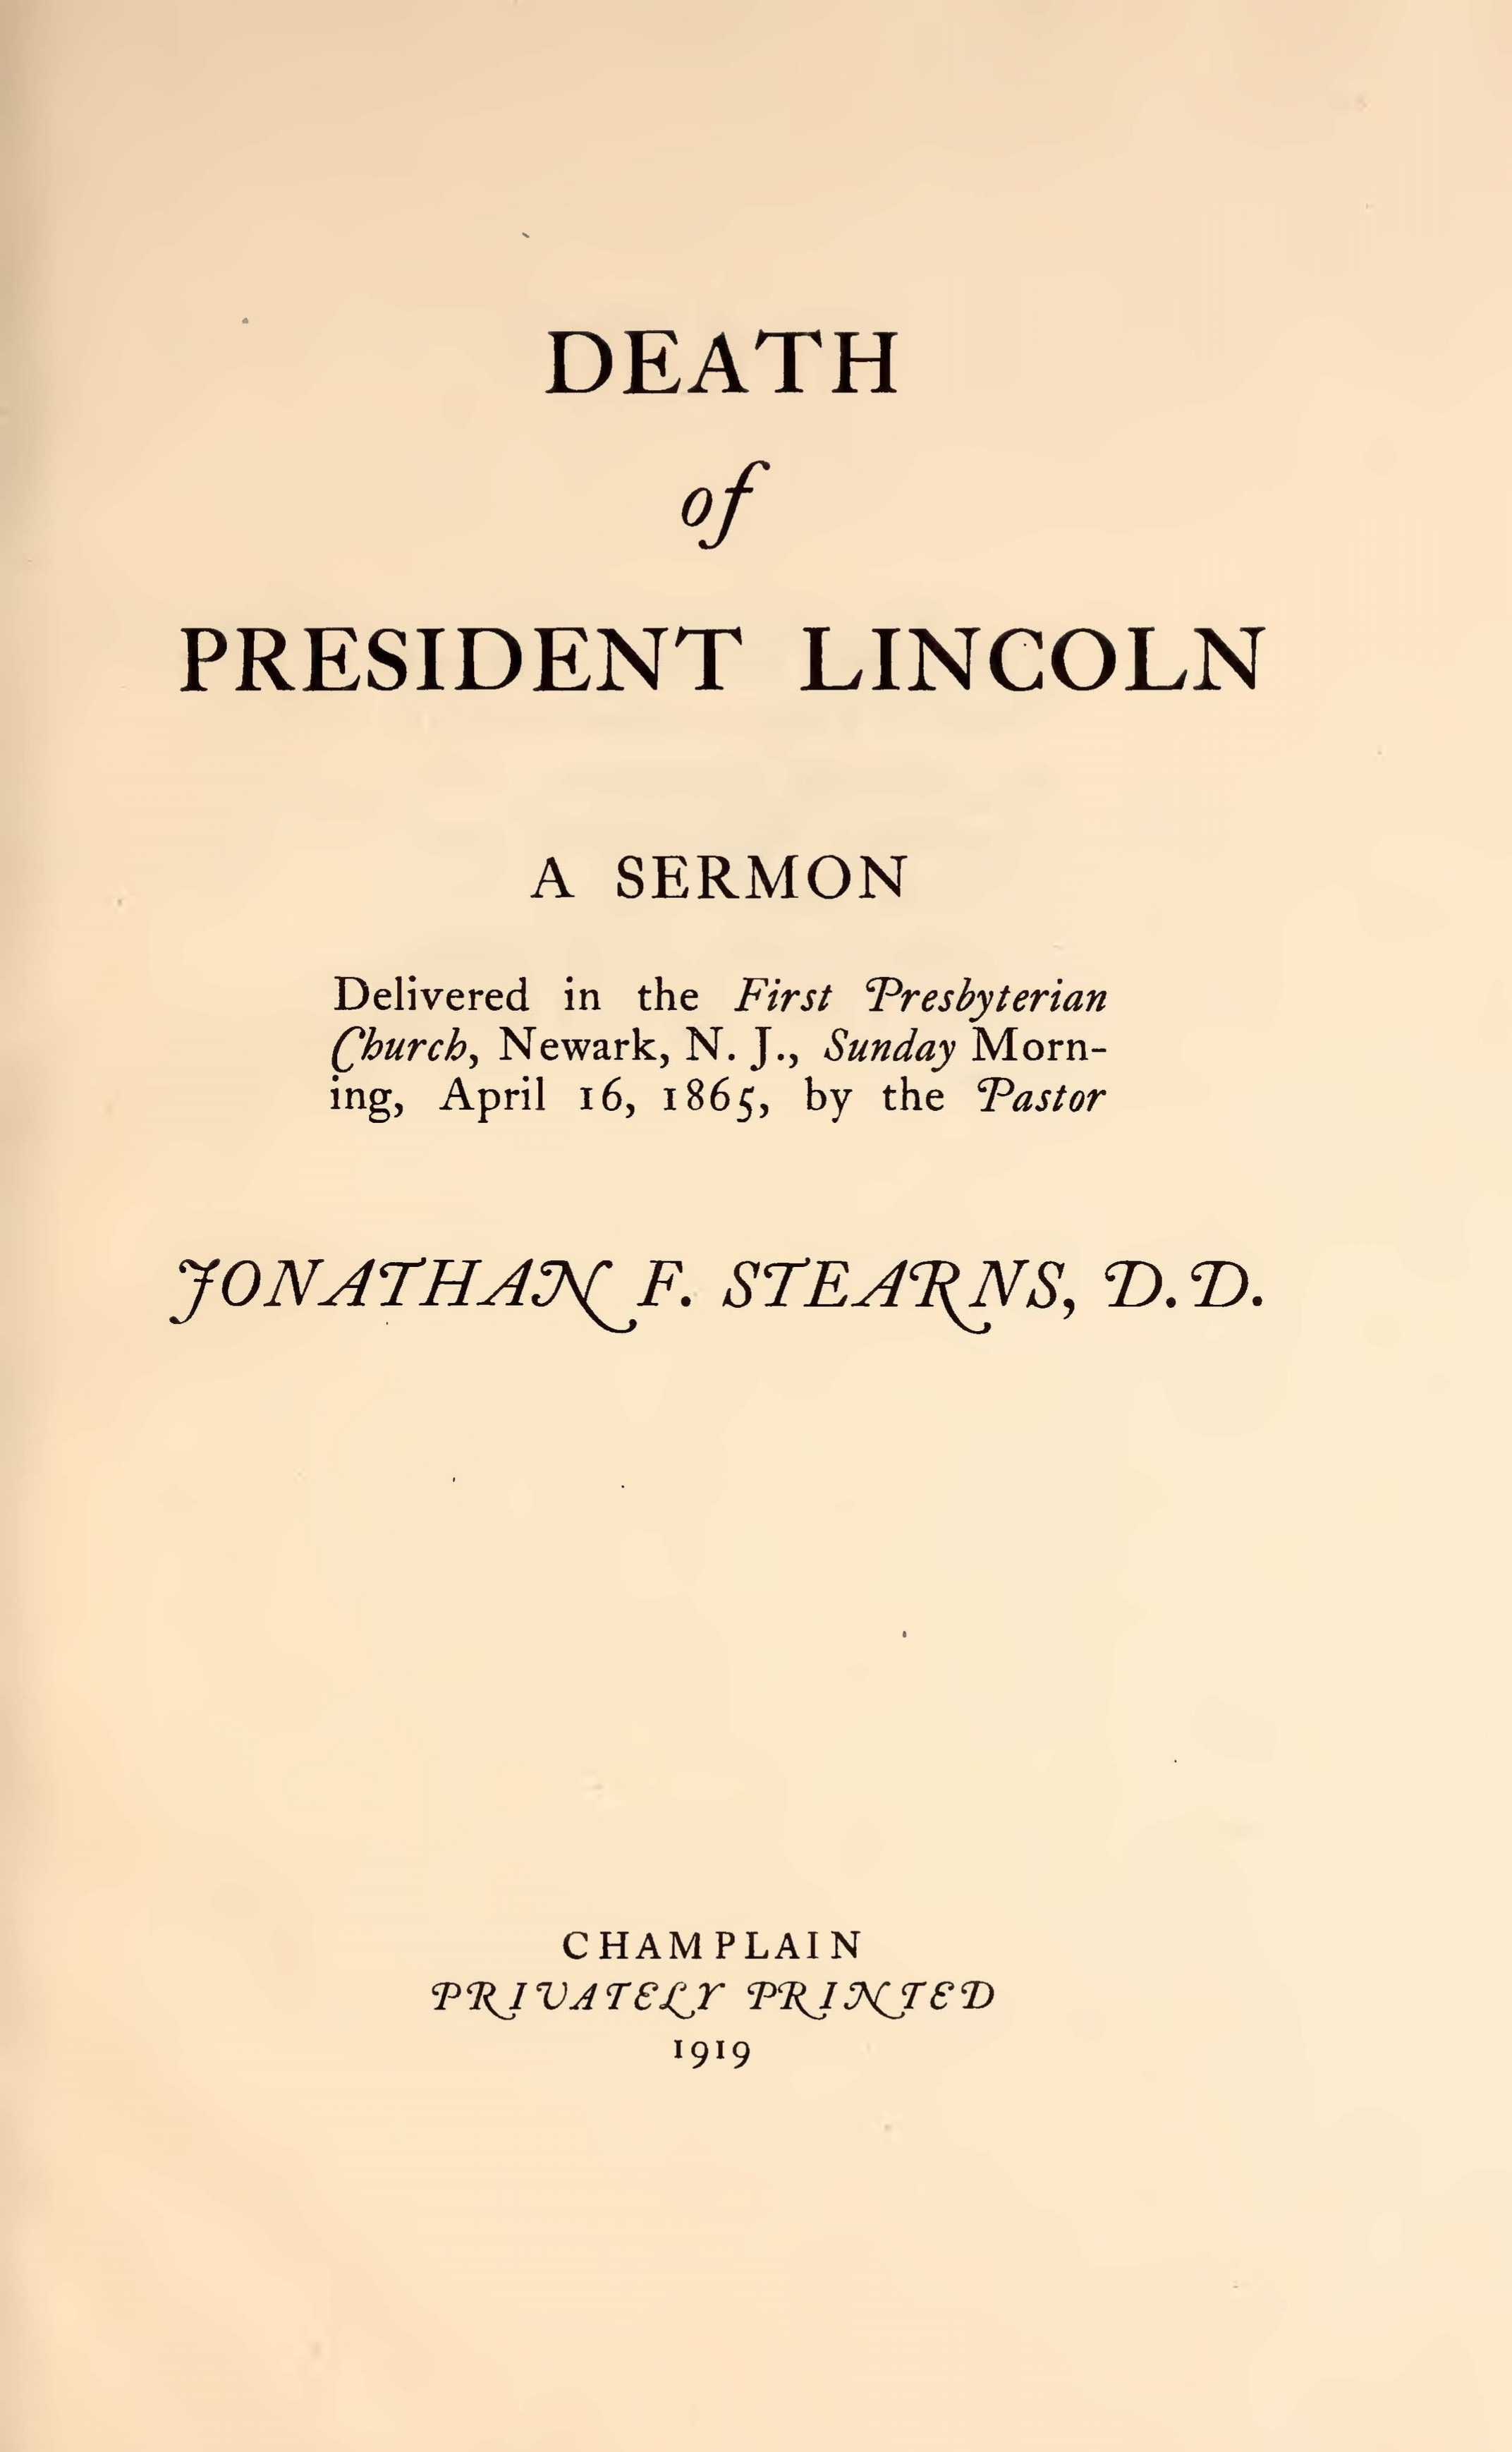 Stearns, Jonathan French, Death of President Lincoln A Sermon Title Page.jpg